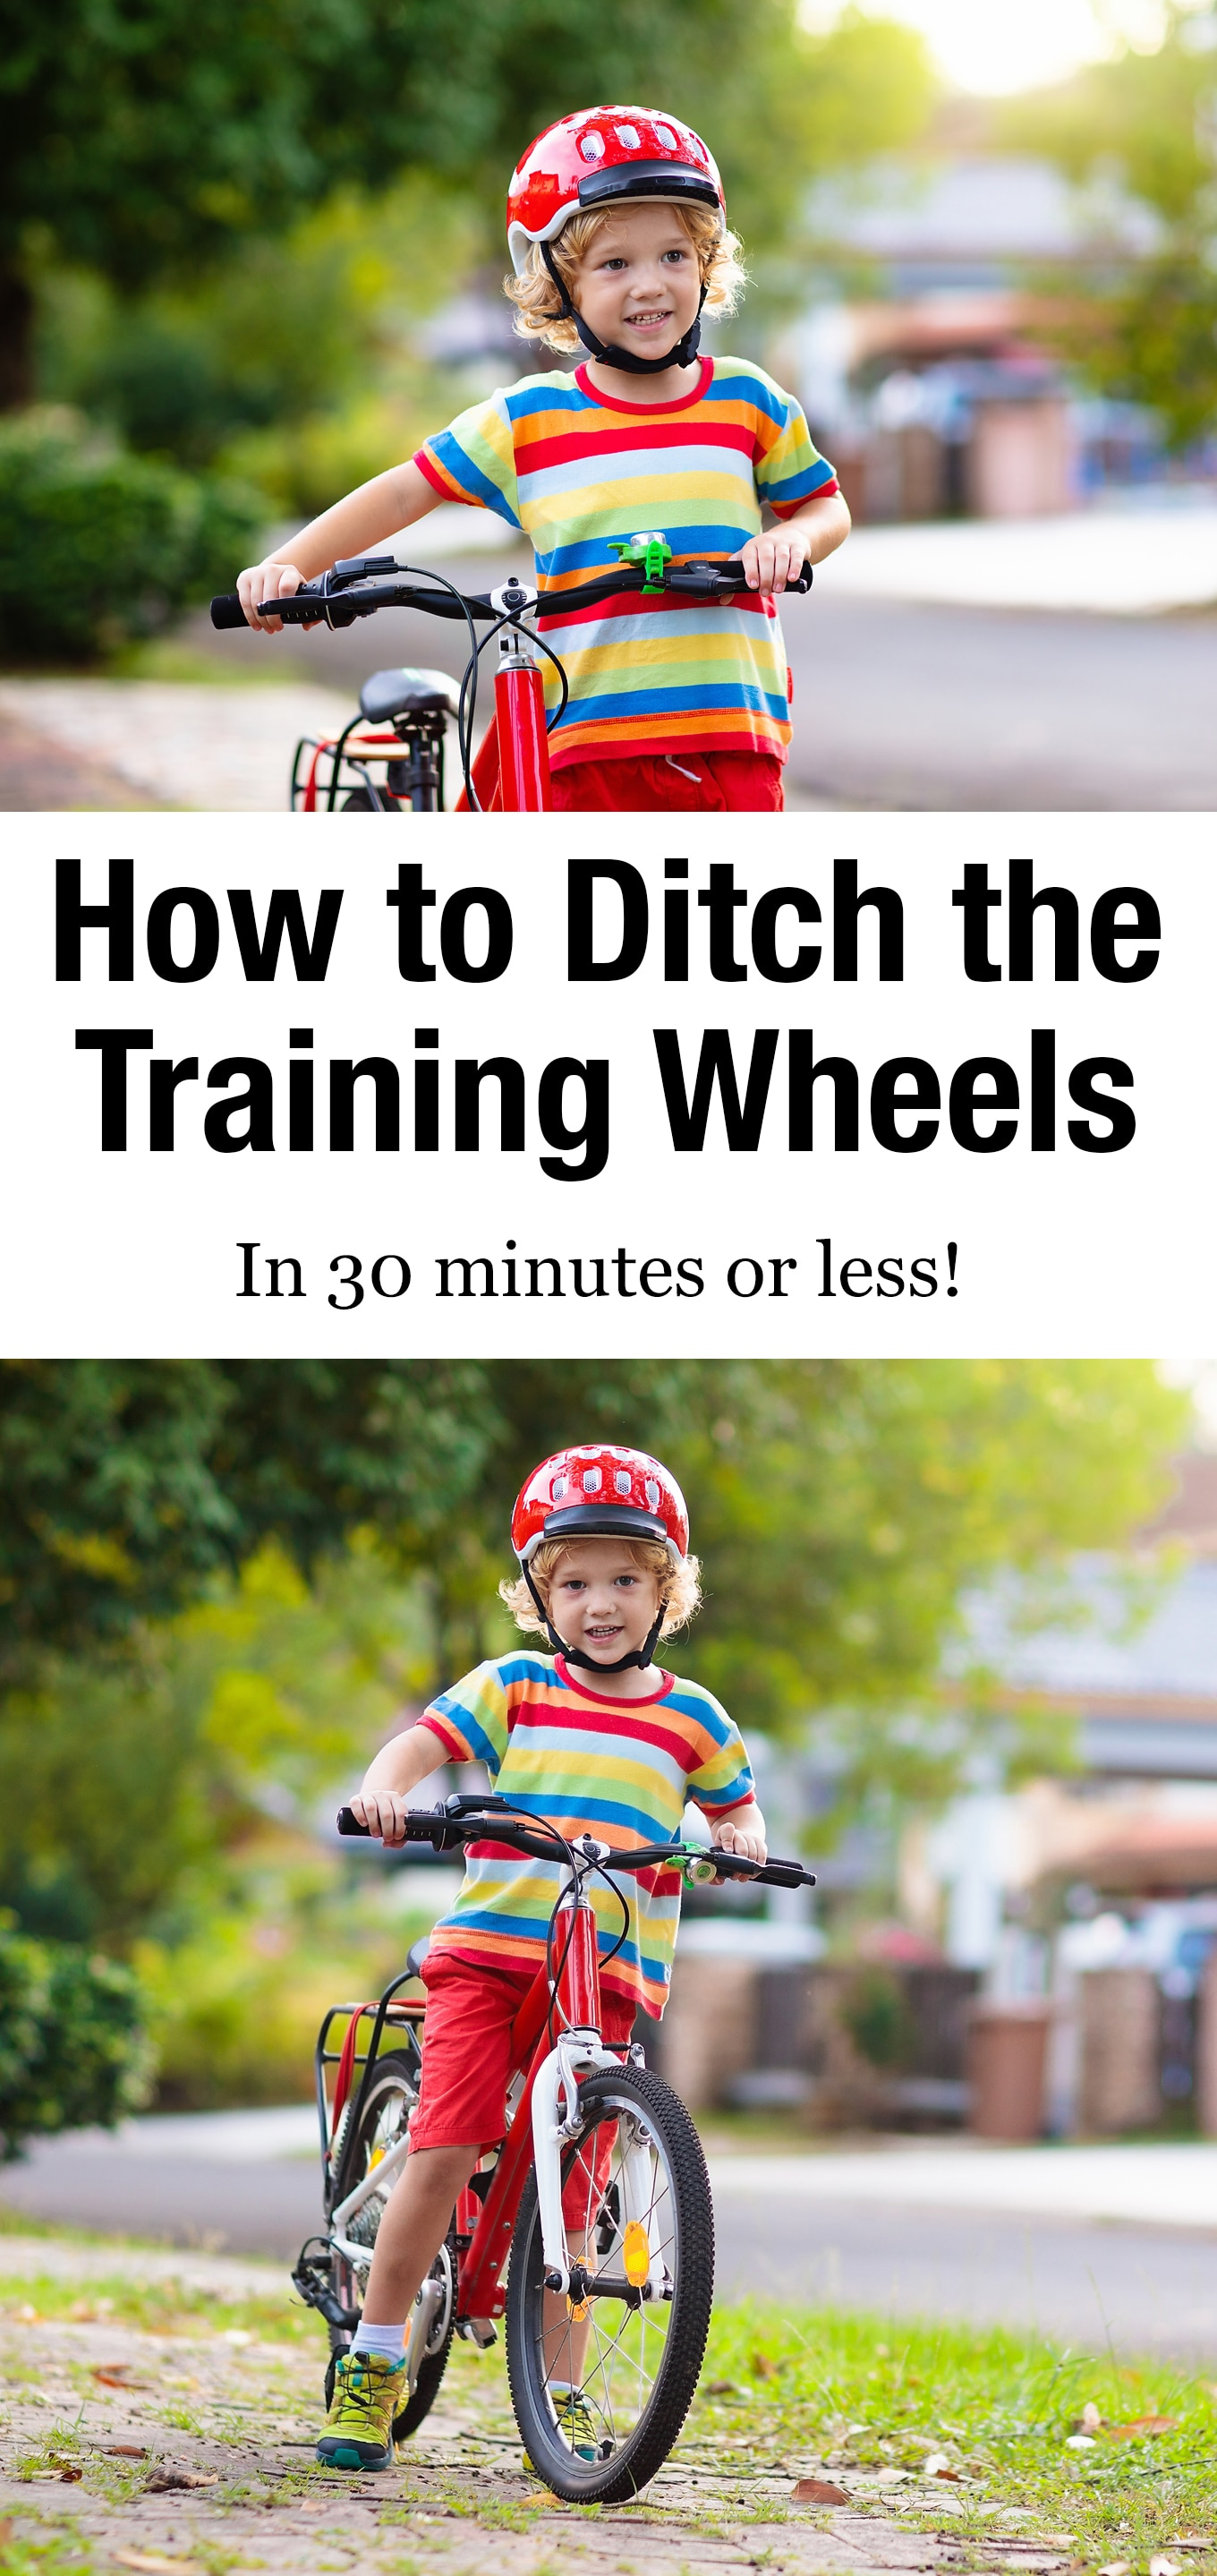 Teach your child how to ride a bike in 30 minutes or less with proven tips that work! #rideabike #teachyourchildtorideabike #preschool #bike #howtorideabike via @firefliesandmudpies